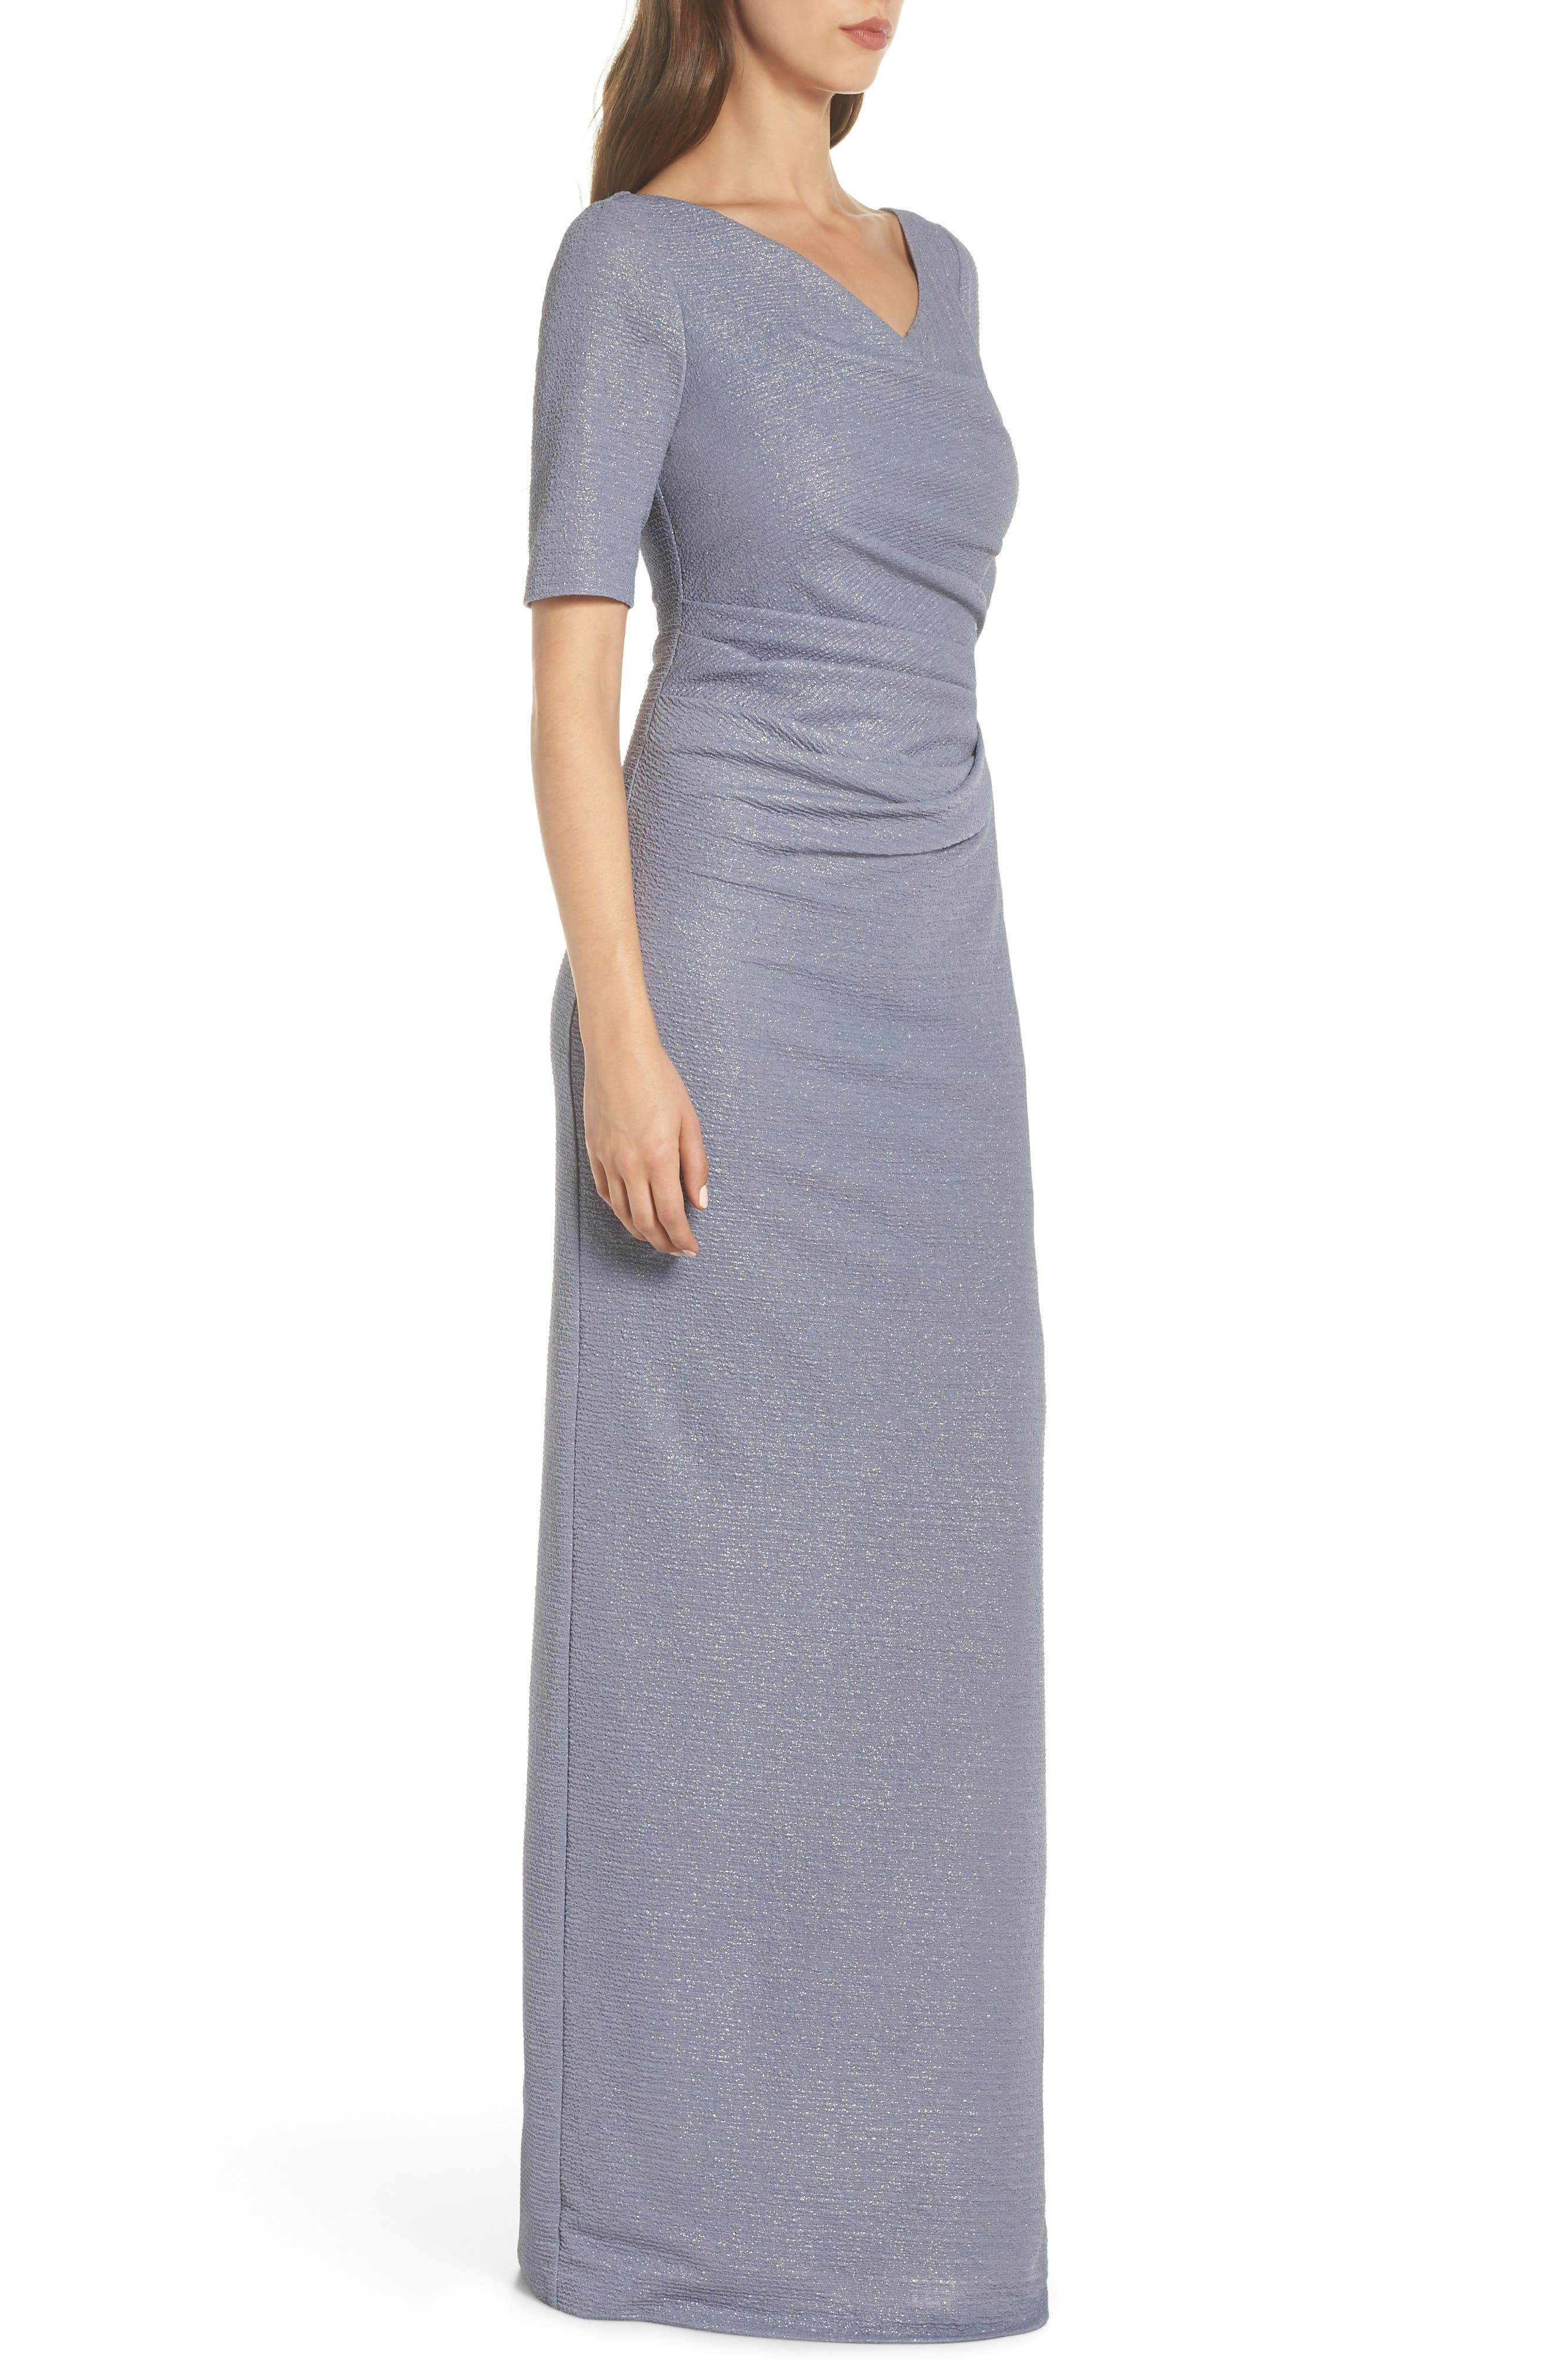 ADRIANNA PAPELL,                             Metallic Gown,                             Alternate thumbnail 3, color,                             028